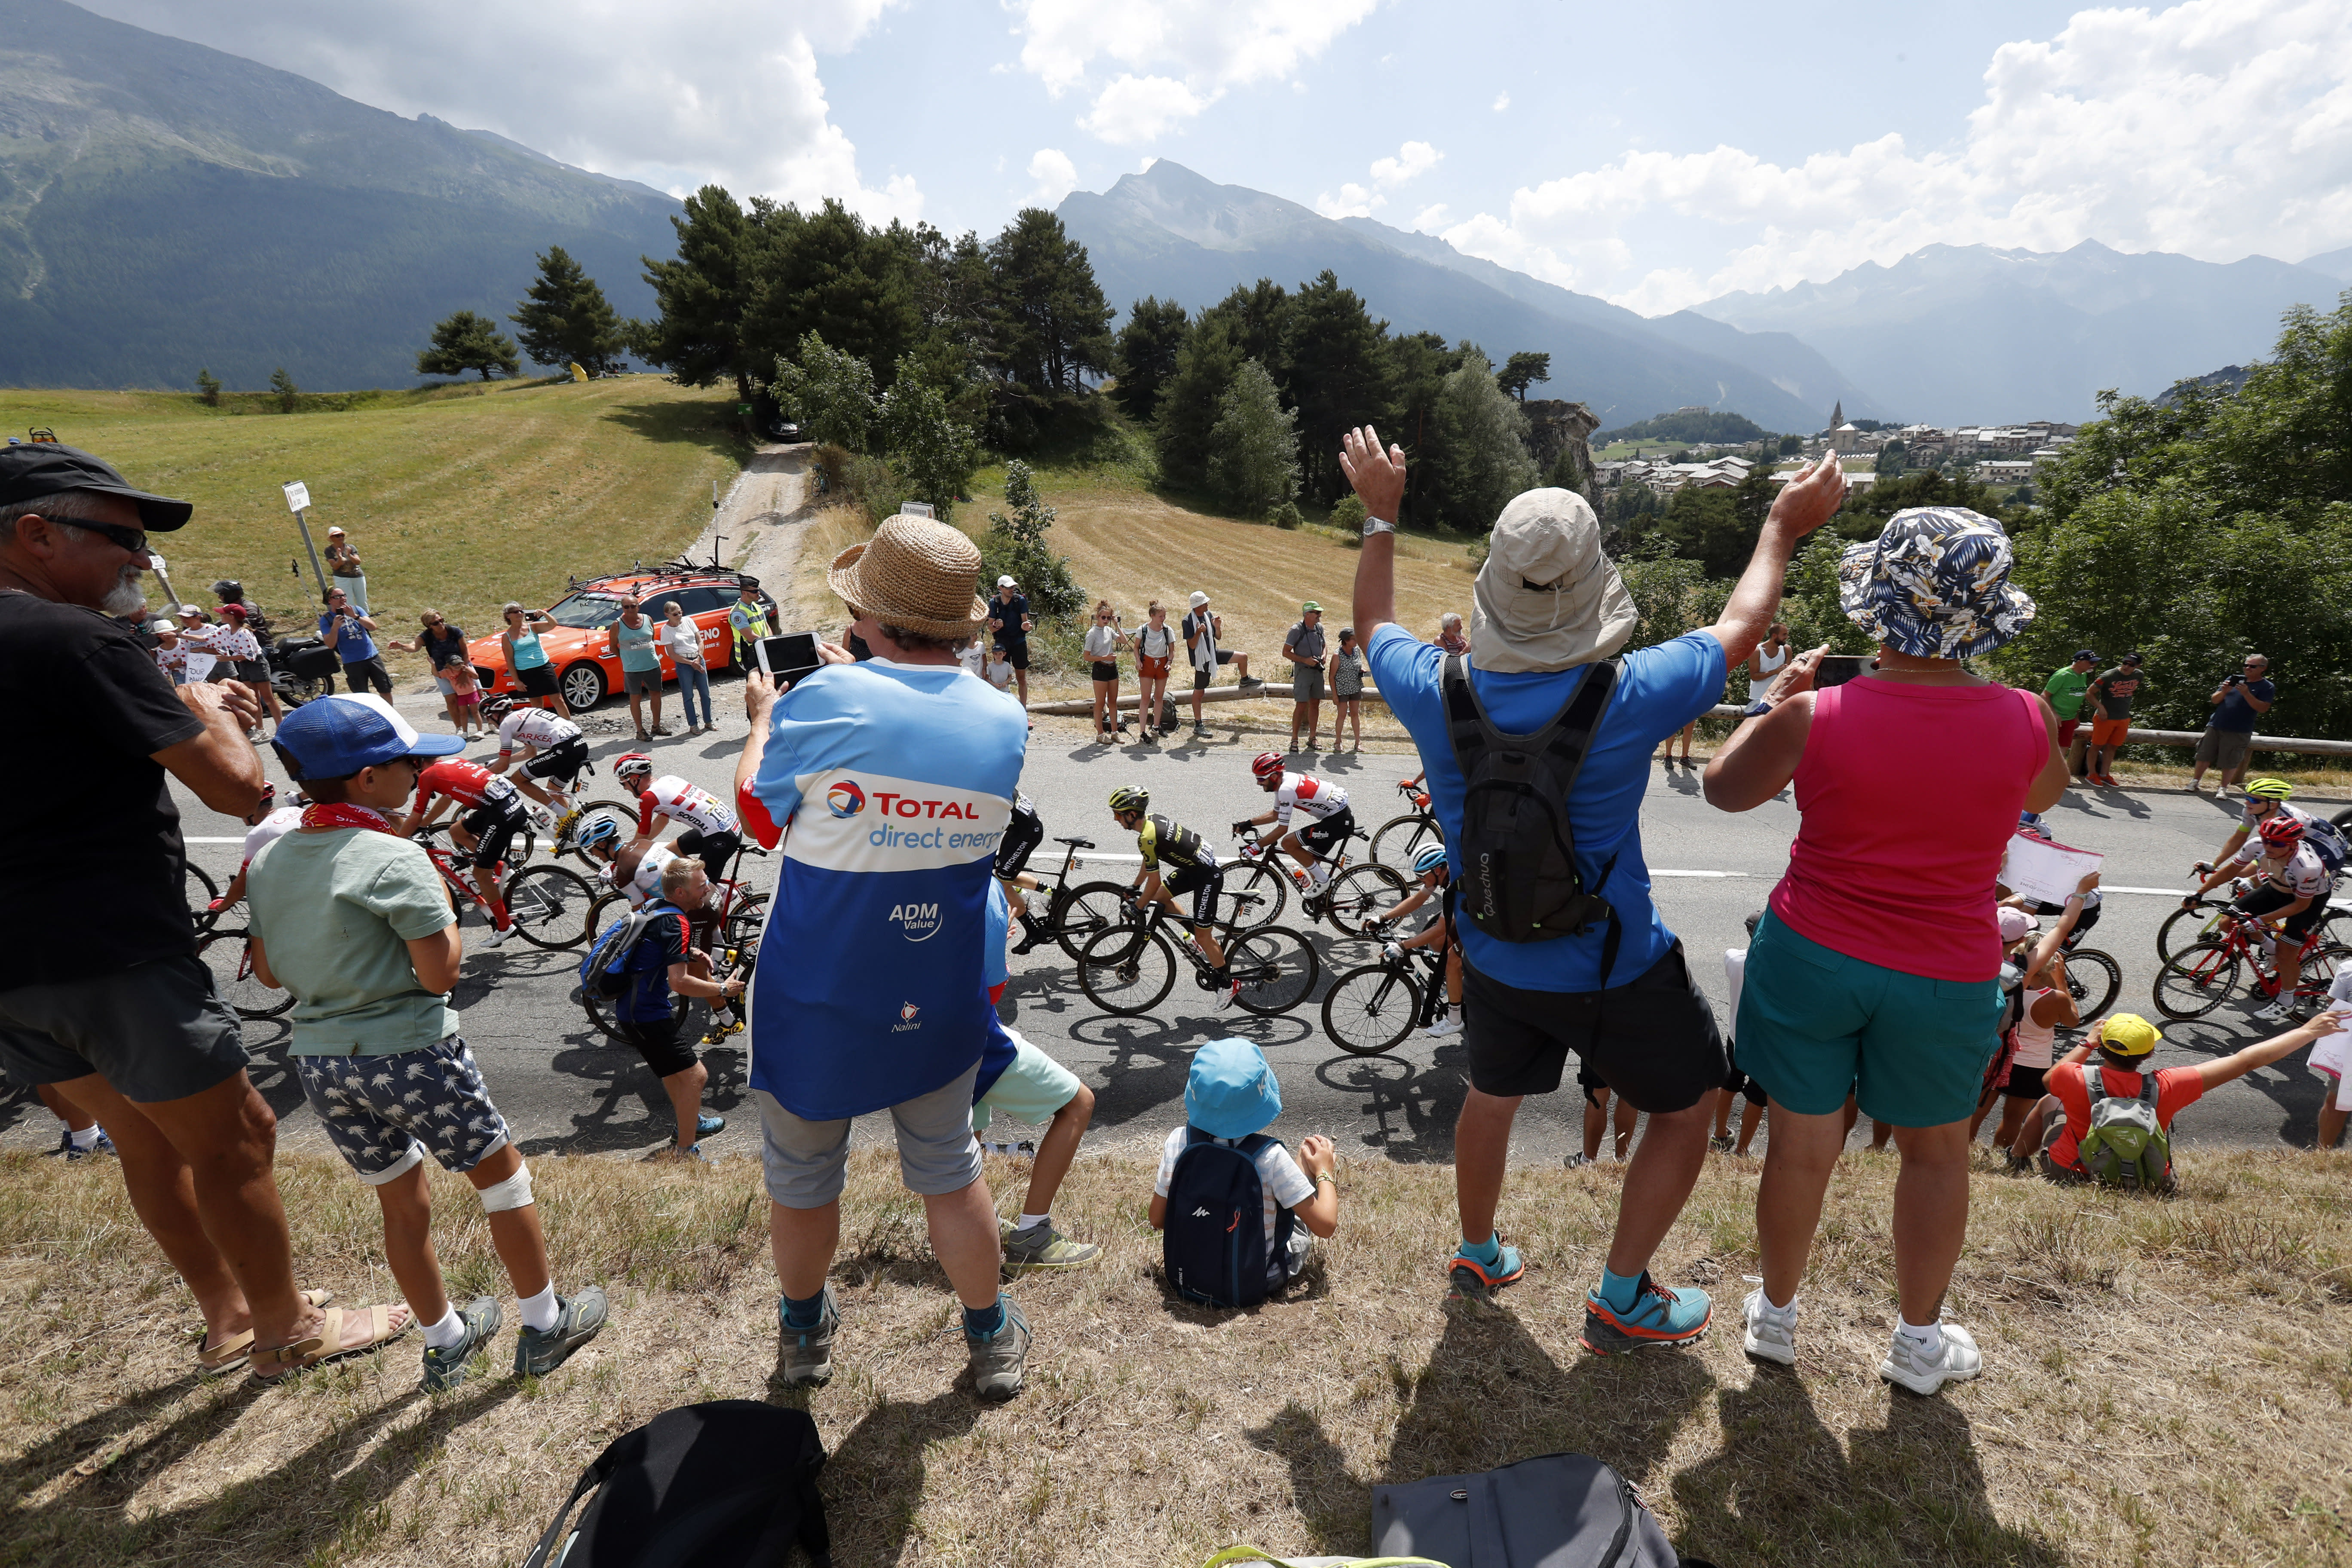 Cycling claims victory for the war on doping as death toll